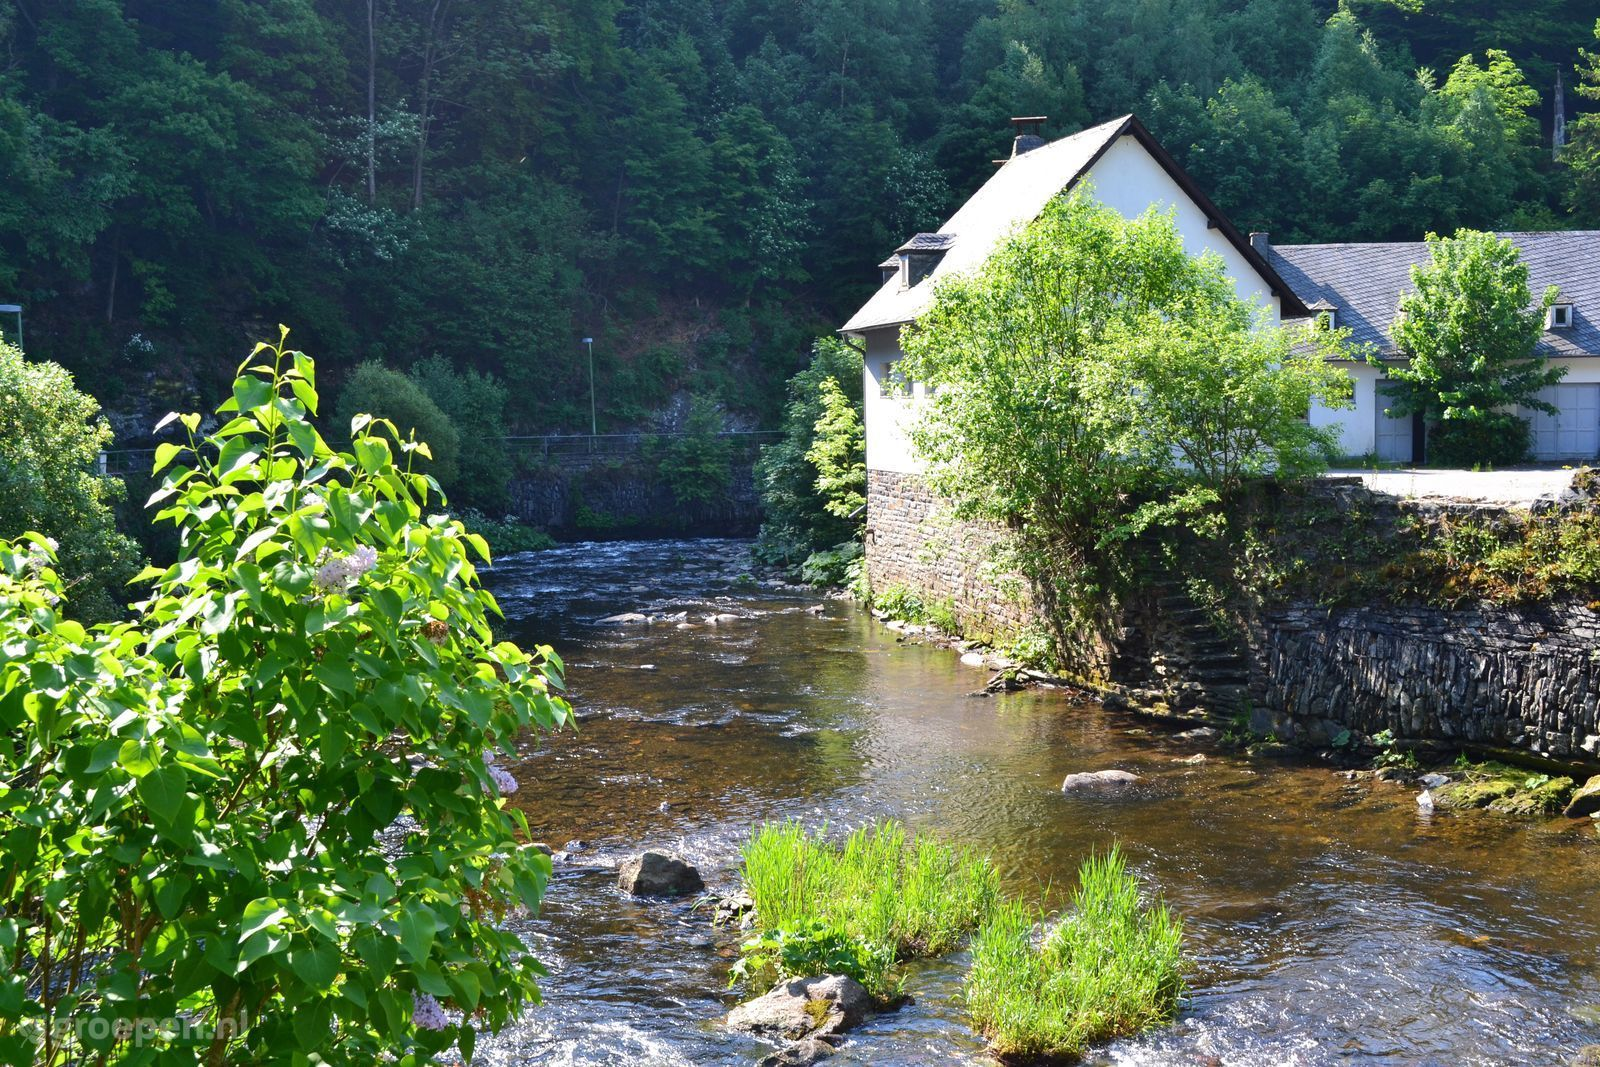 Group accommodation Monschau